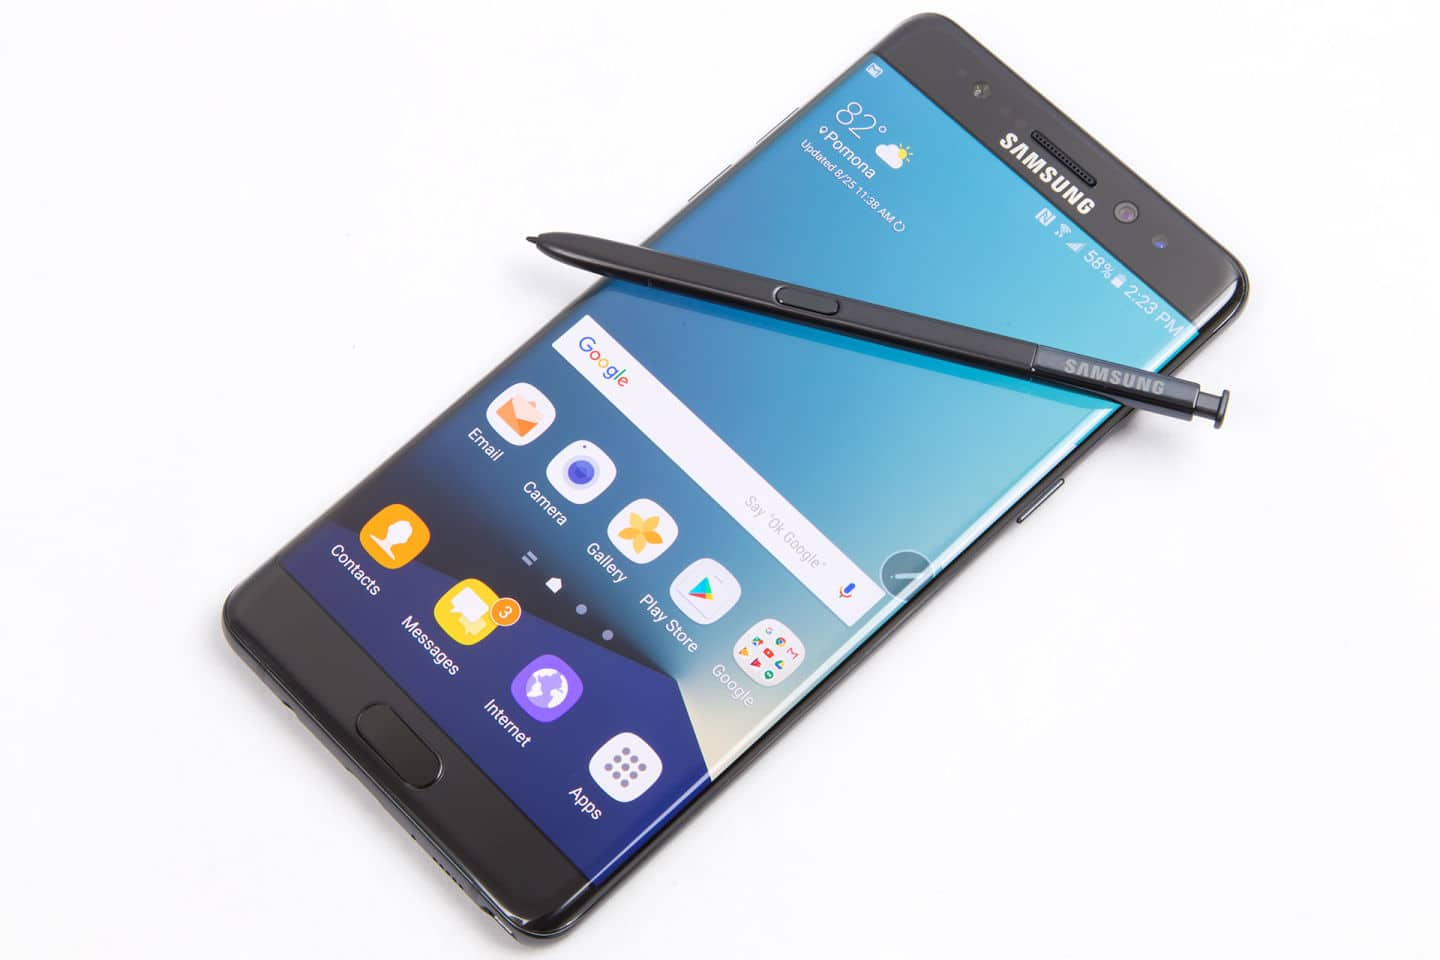 Samsung Galaxy Note 7 recall - Get upto $100 - Starts today!